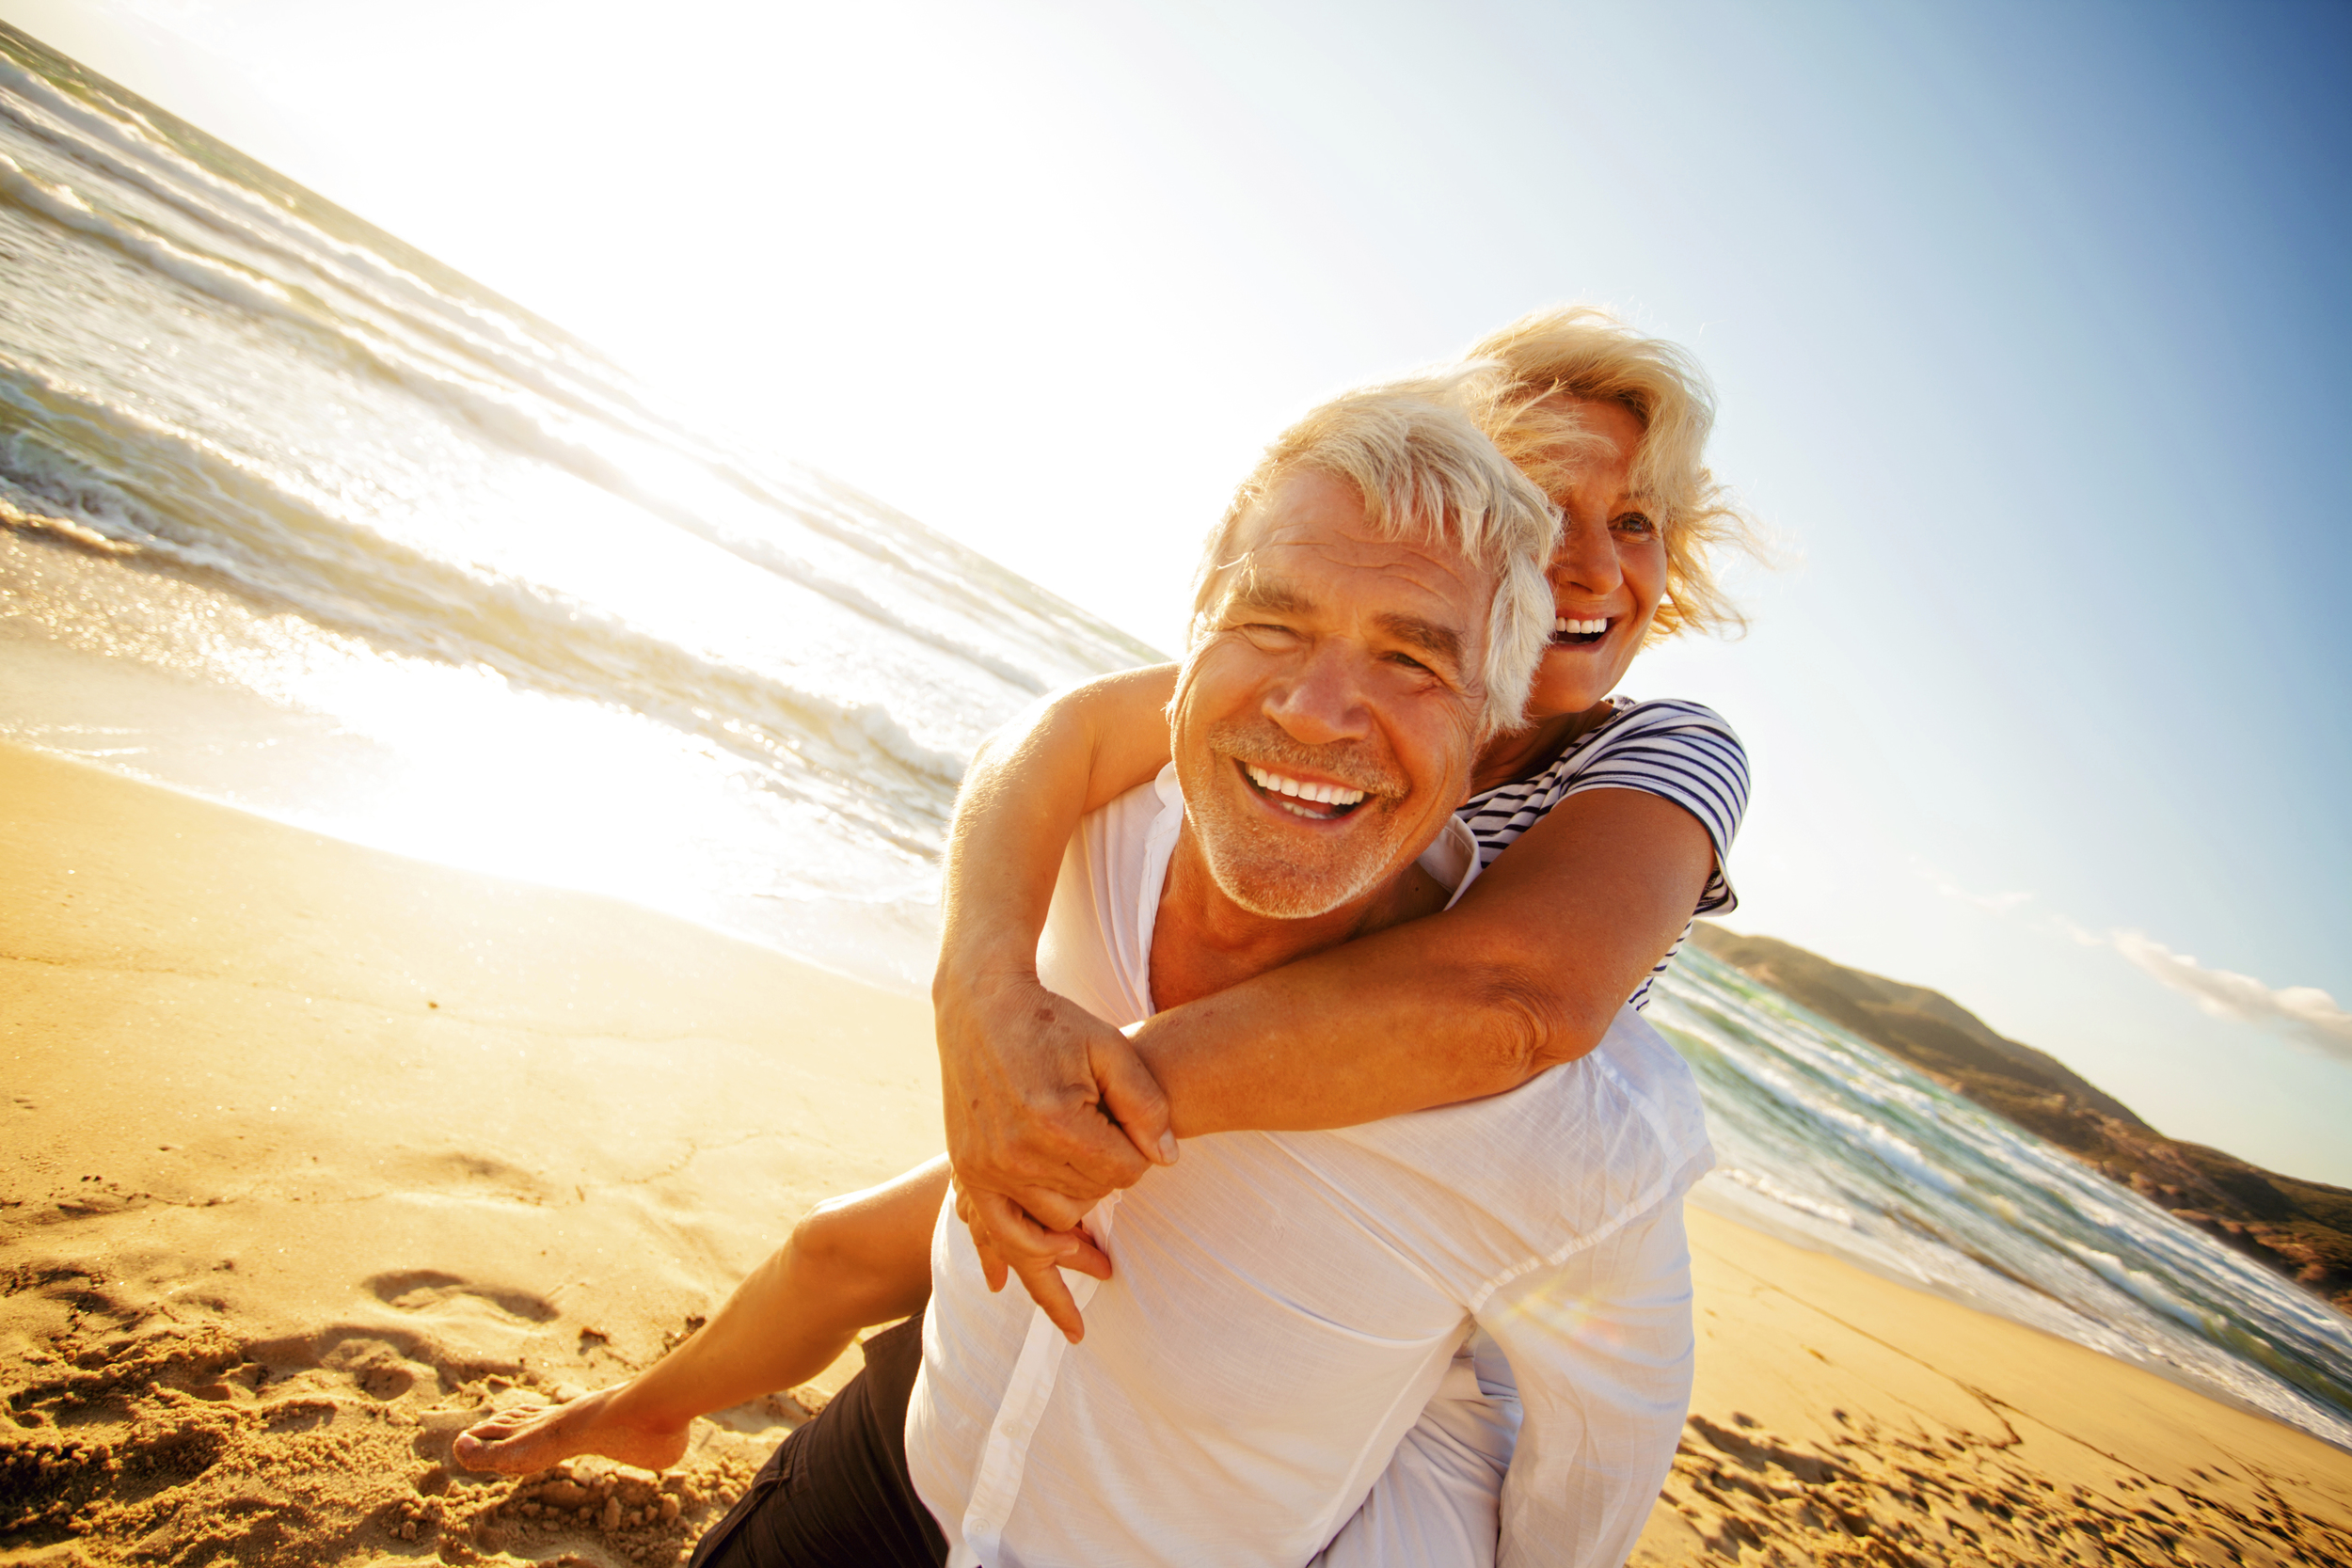 Dr. Dbouk can restore your smile with dental implants.